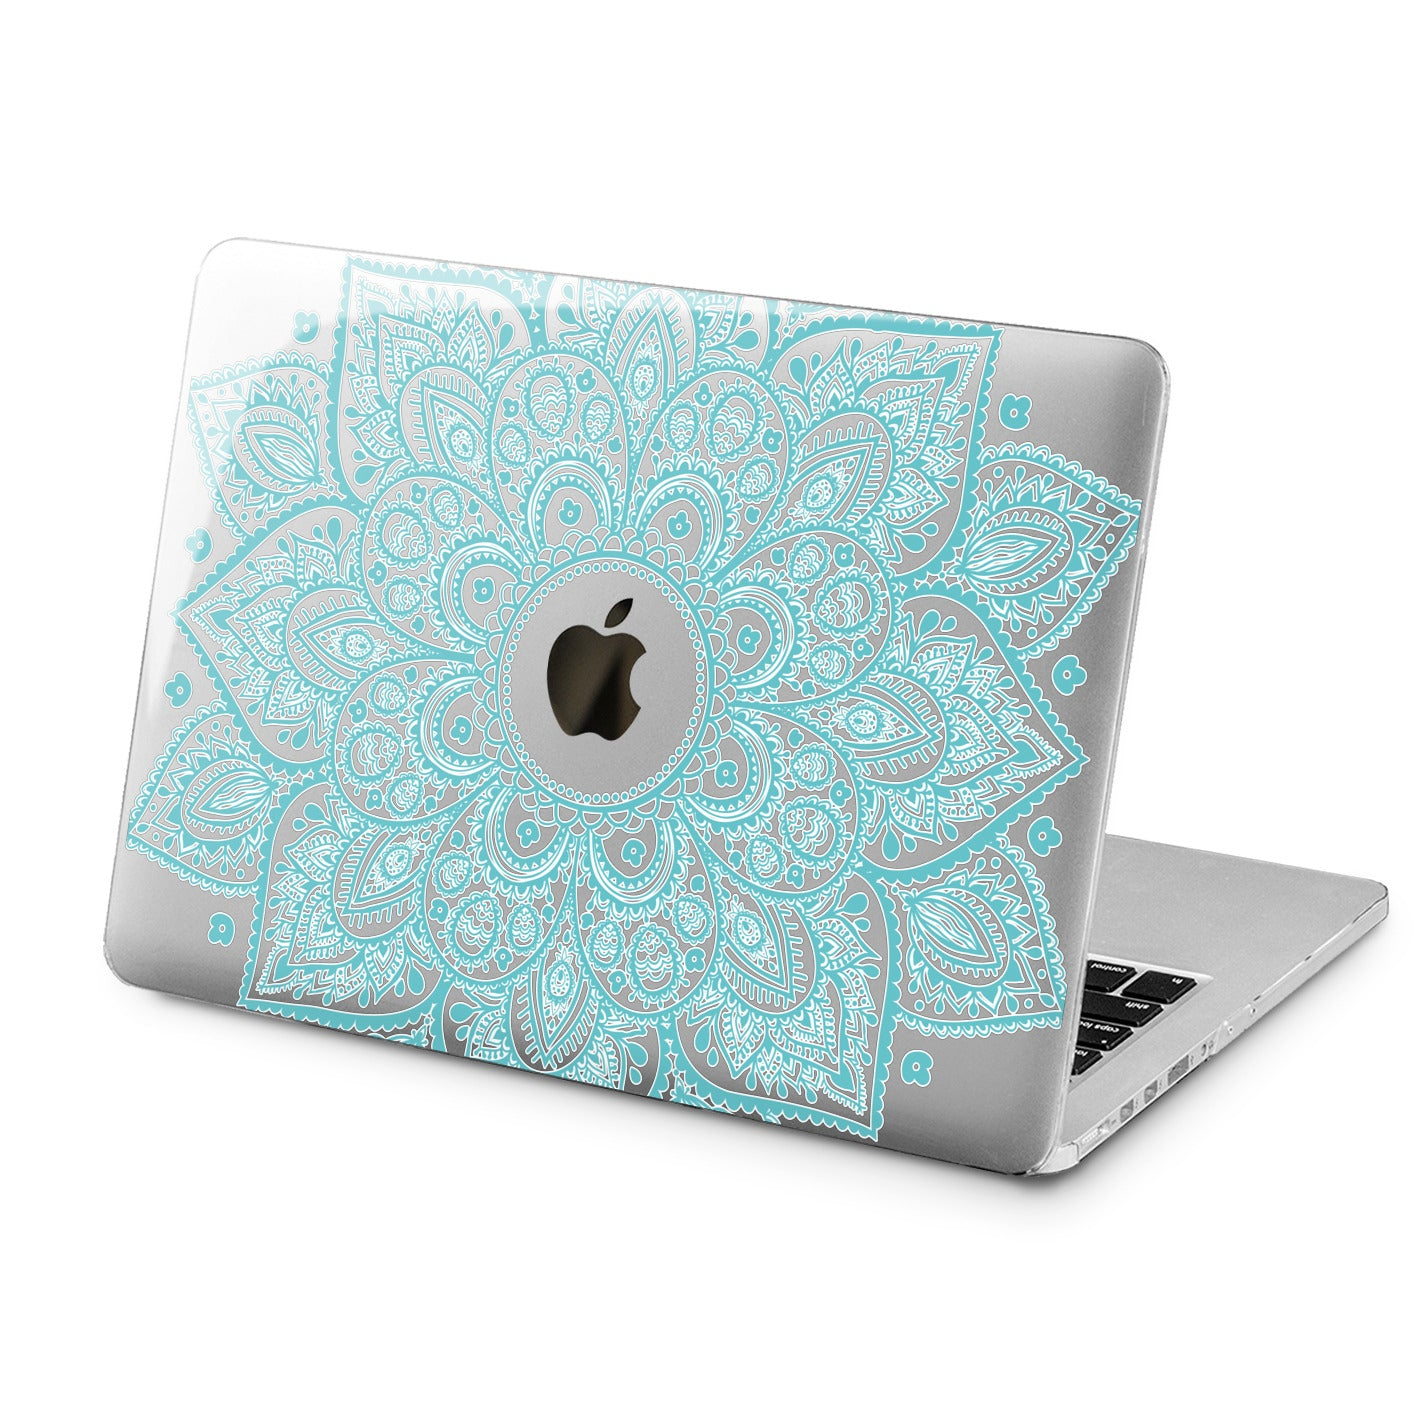 Lex Altern Lex Altern Blue Mandala Case for your Laptop Apple Macbook.